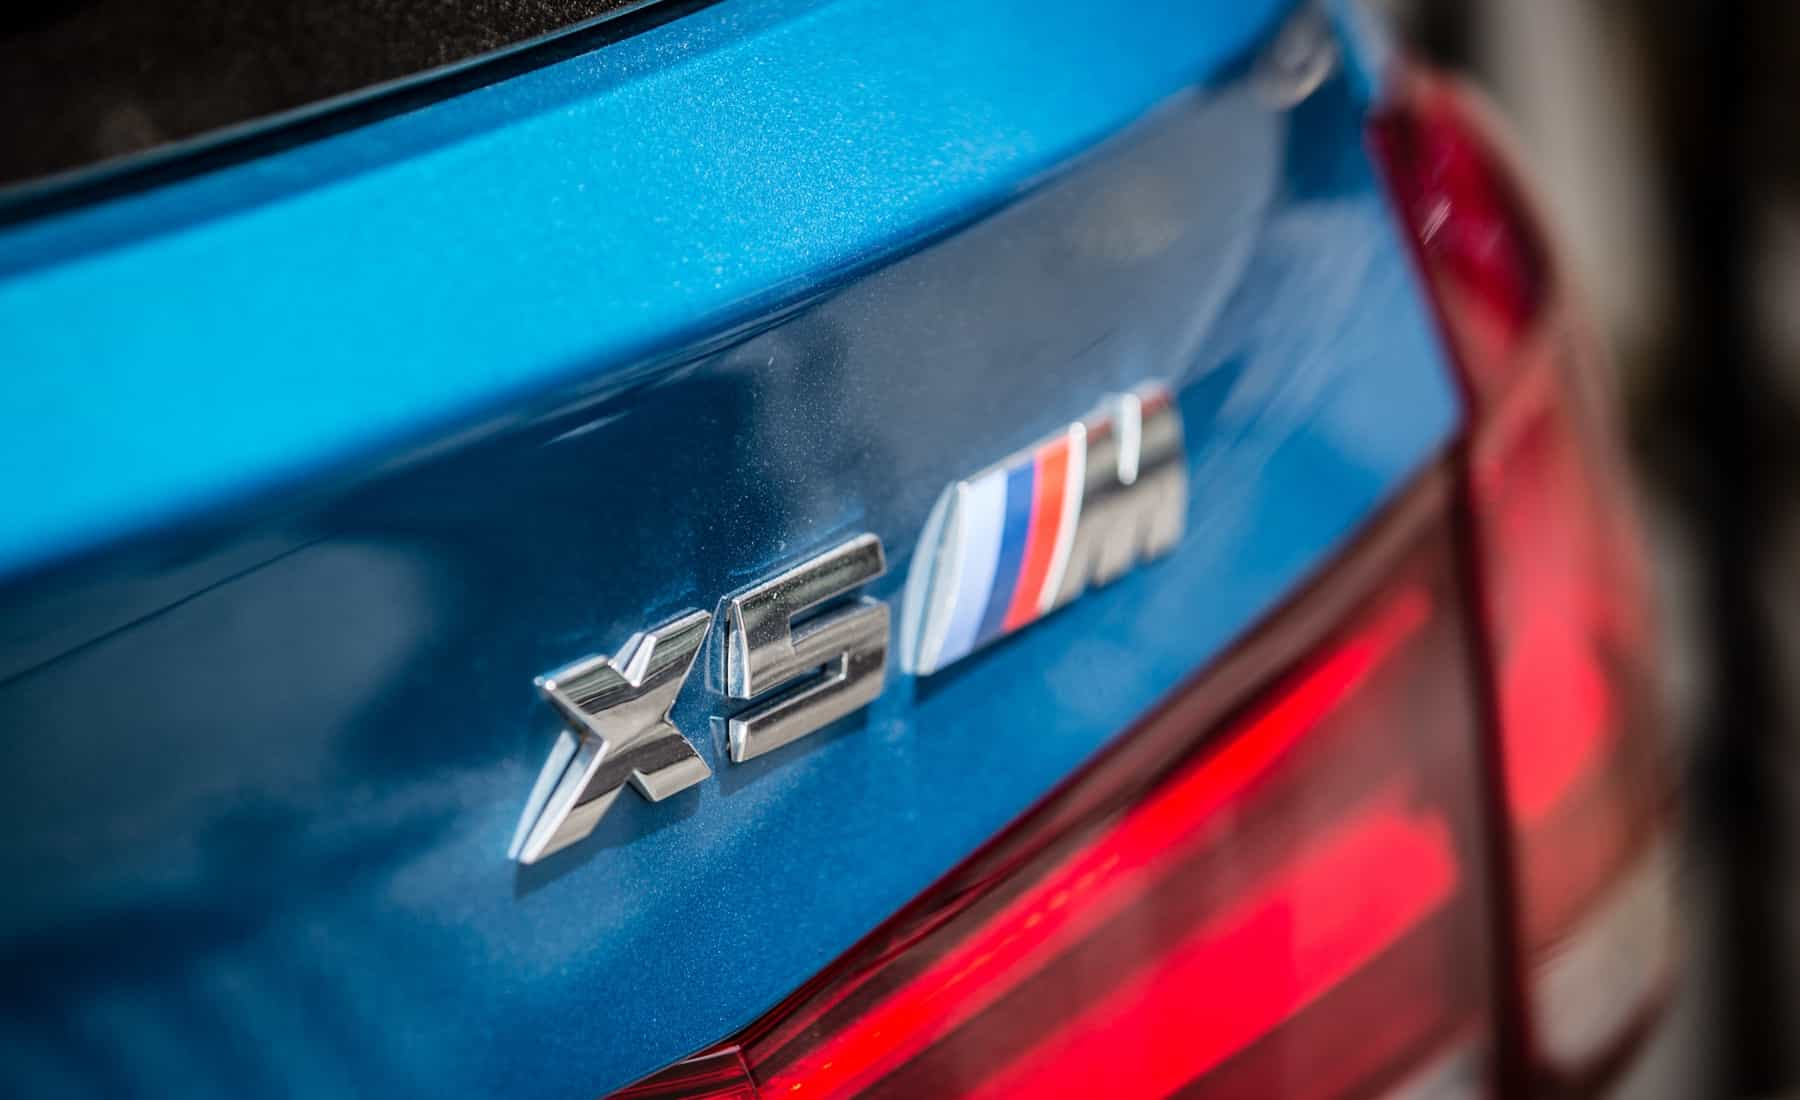 2017 BMW X5 M Exterior View Rear Badge (Photo 33 of 35)